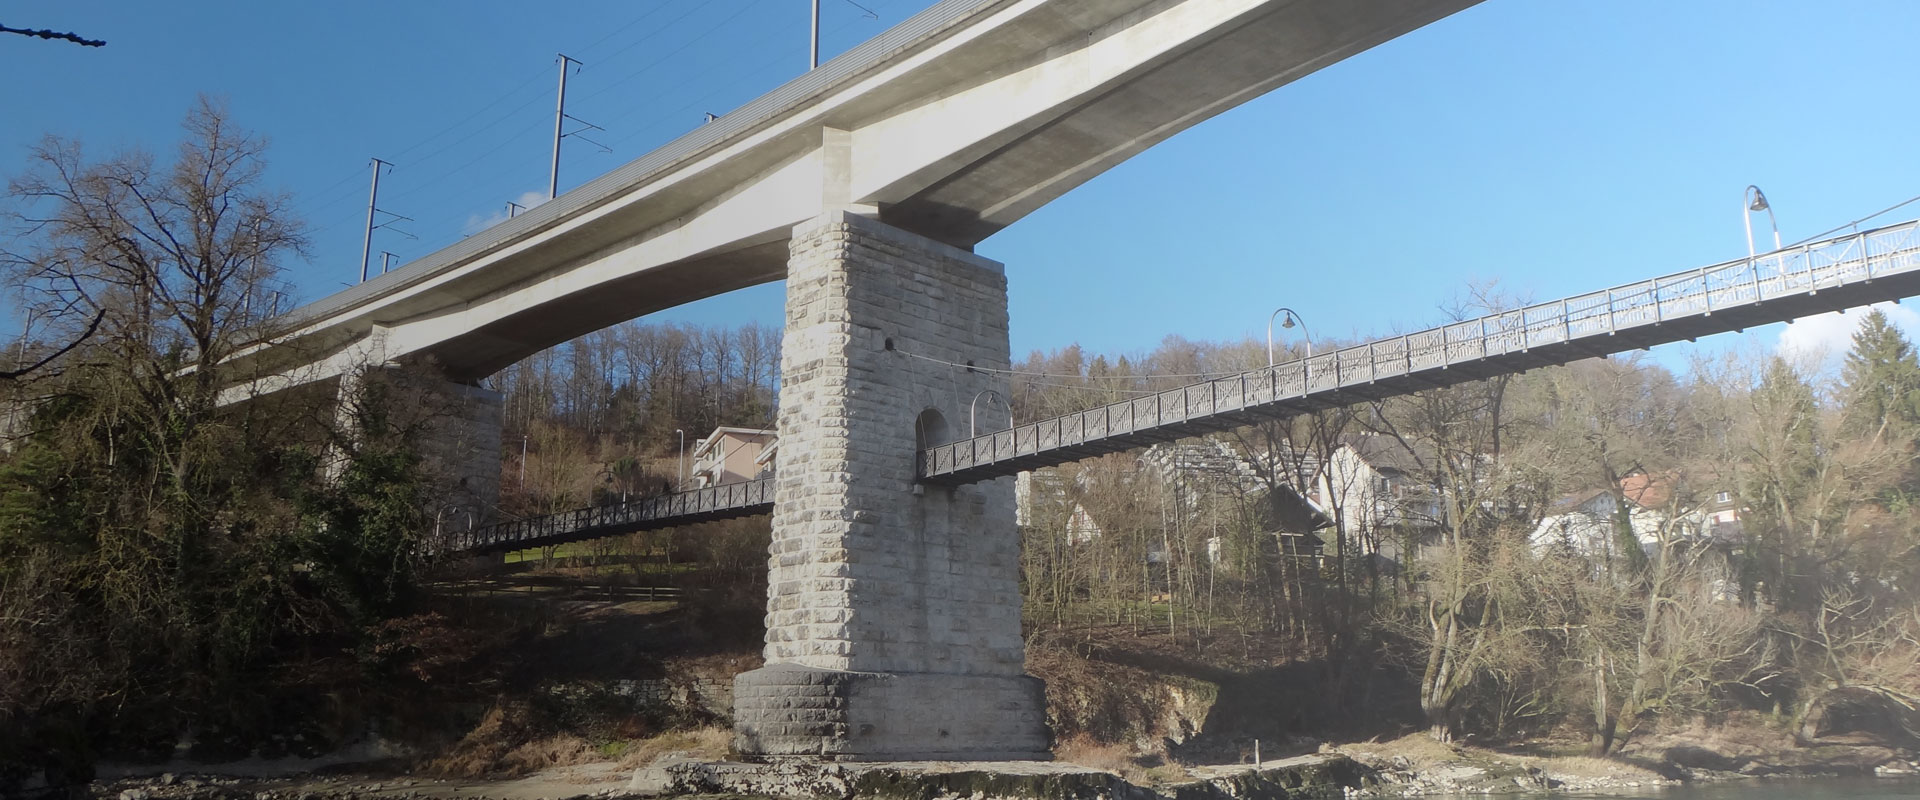 20 year anniversary of the Brugg railway bridge